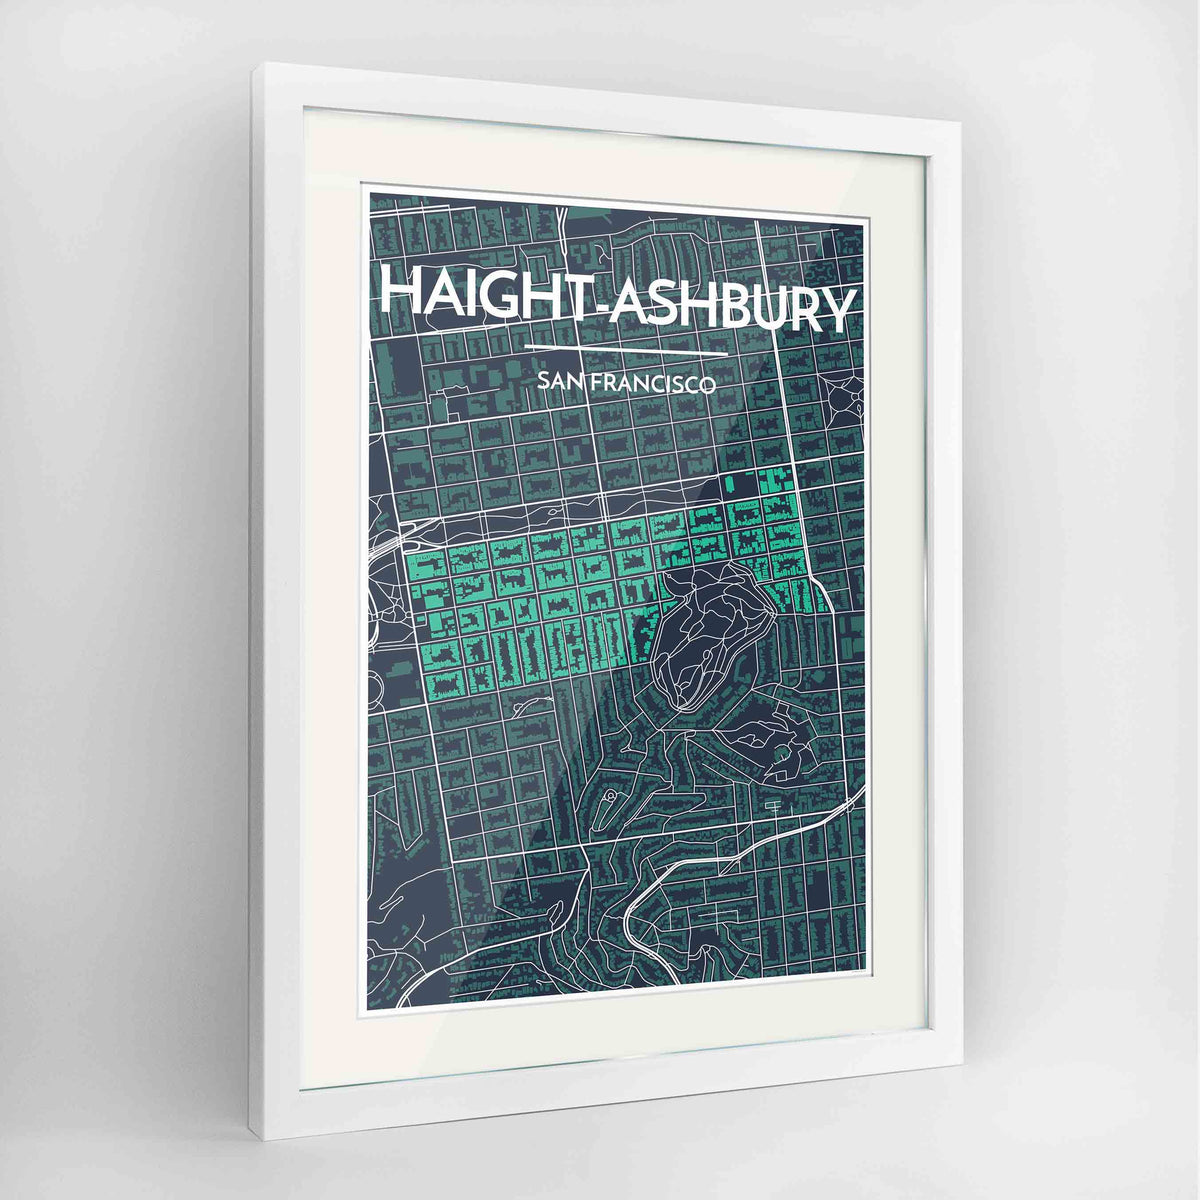 "Framed Haight-Ashbury San Francisco Map Art Print 24x36"" Contemporary White frame Point Two Design Group"